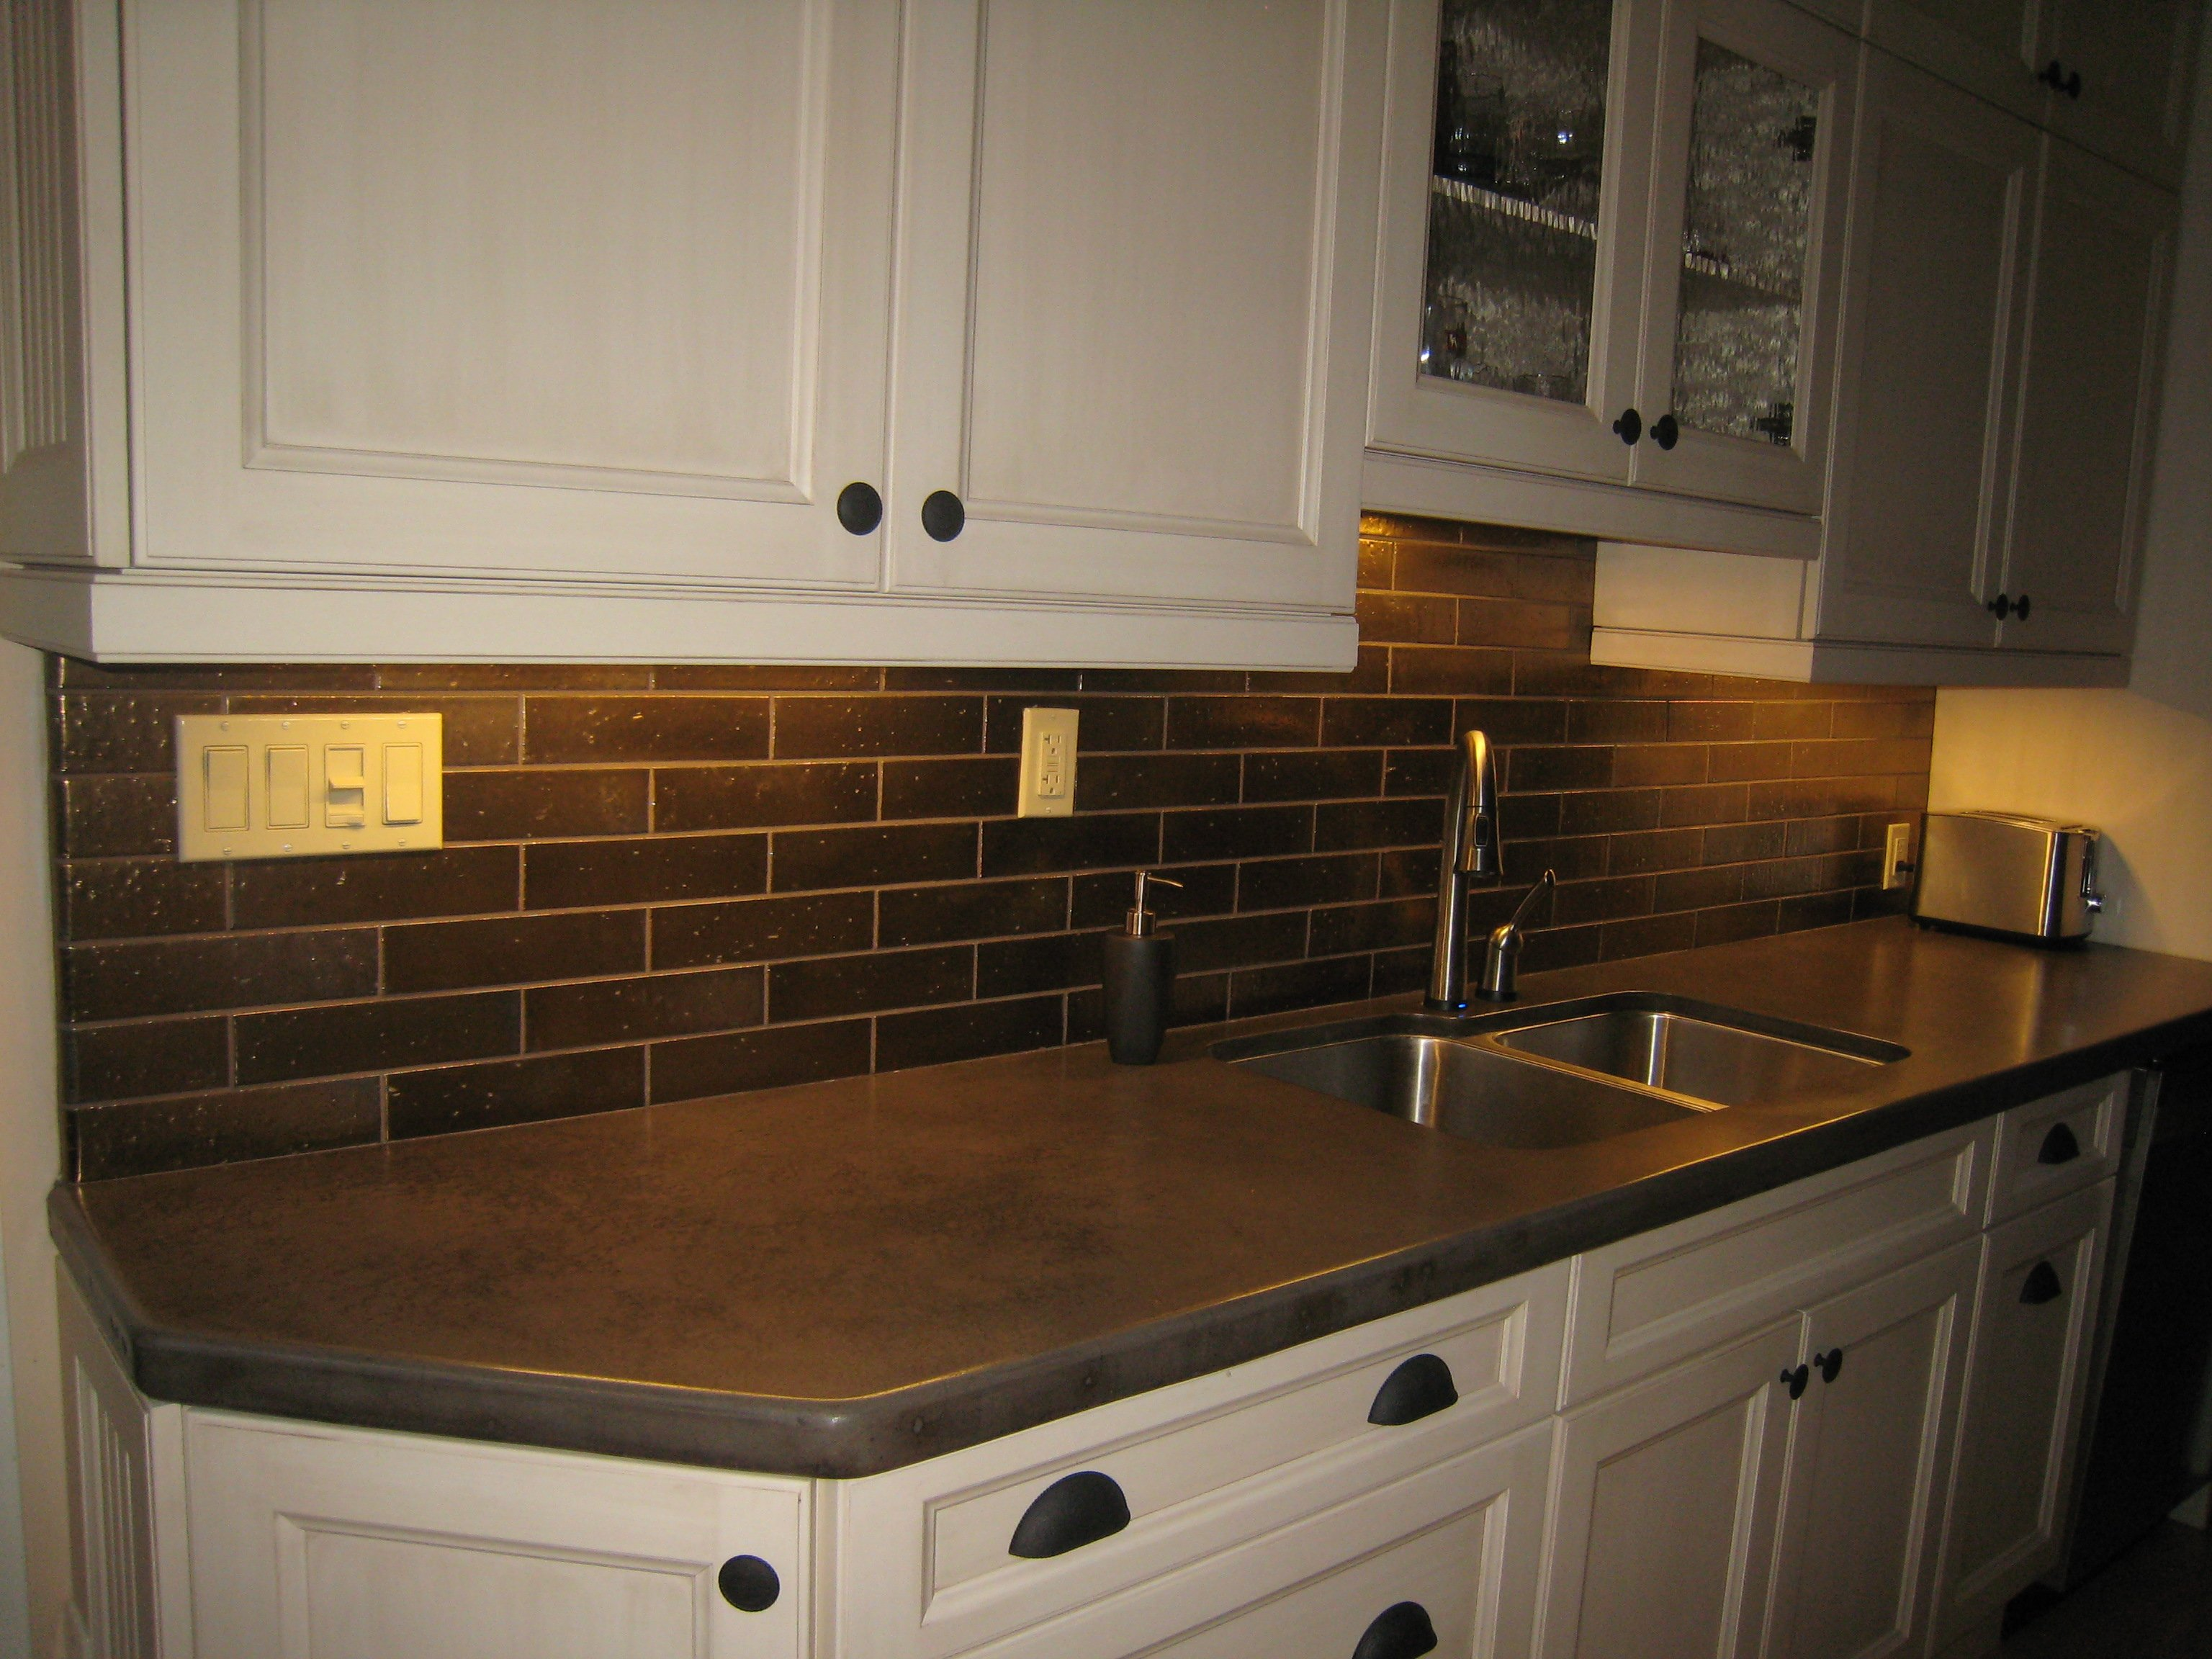 Brown Kitchen Backsplash.